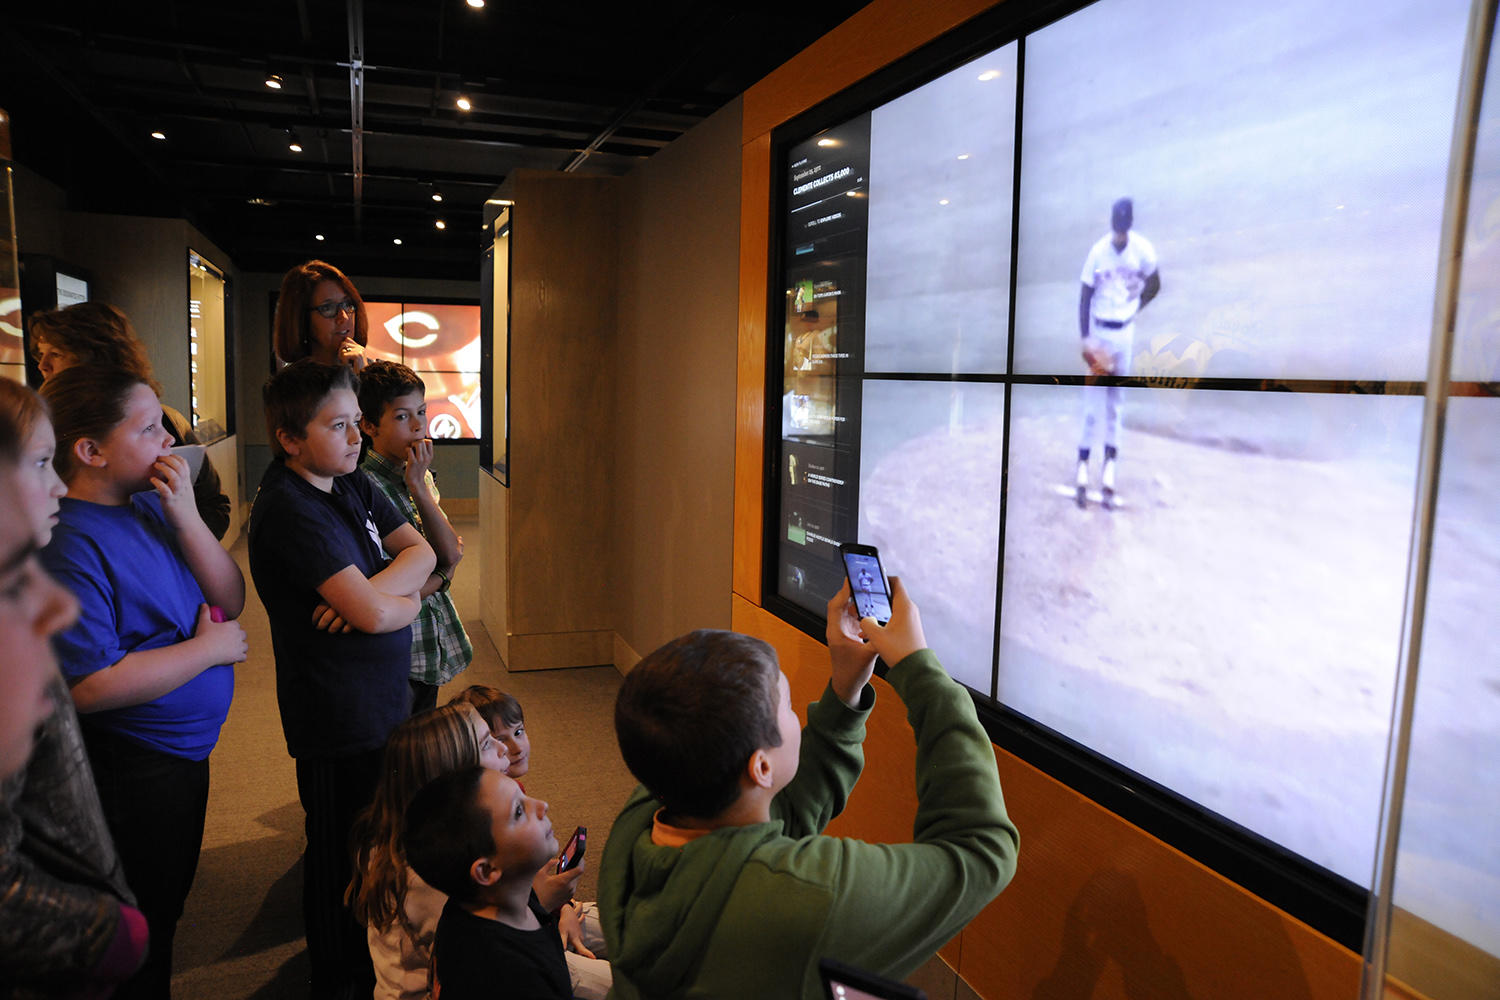 A local school group watches a video clip of former New York Mets pitcher Tom Seaver while touring the Museum. (Milo Stewart Jr. / National Baseball Hall of Fame and Museum)